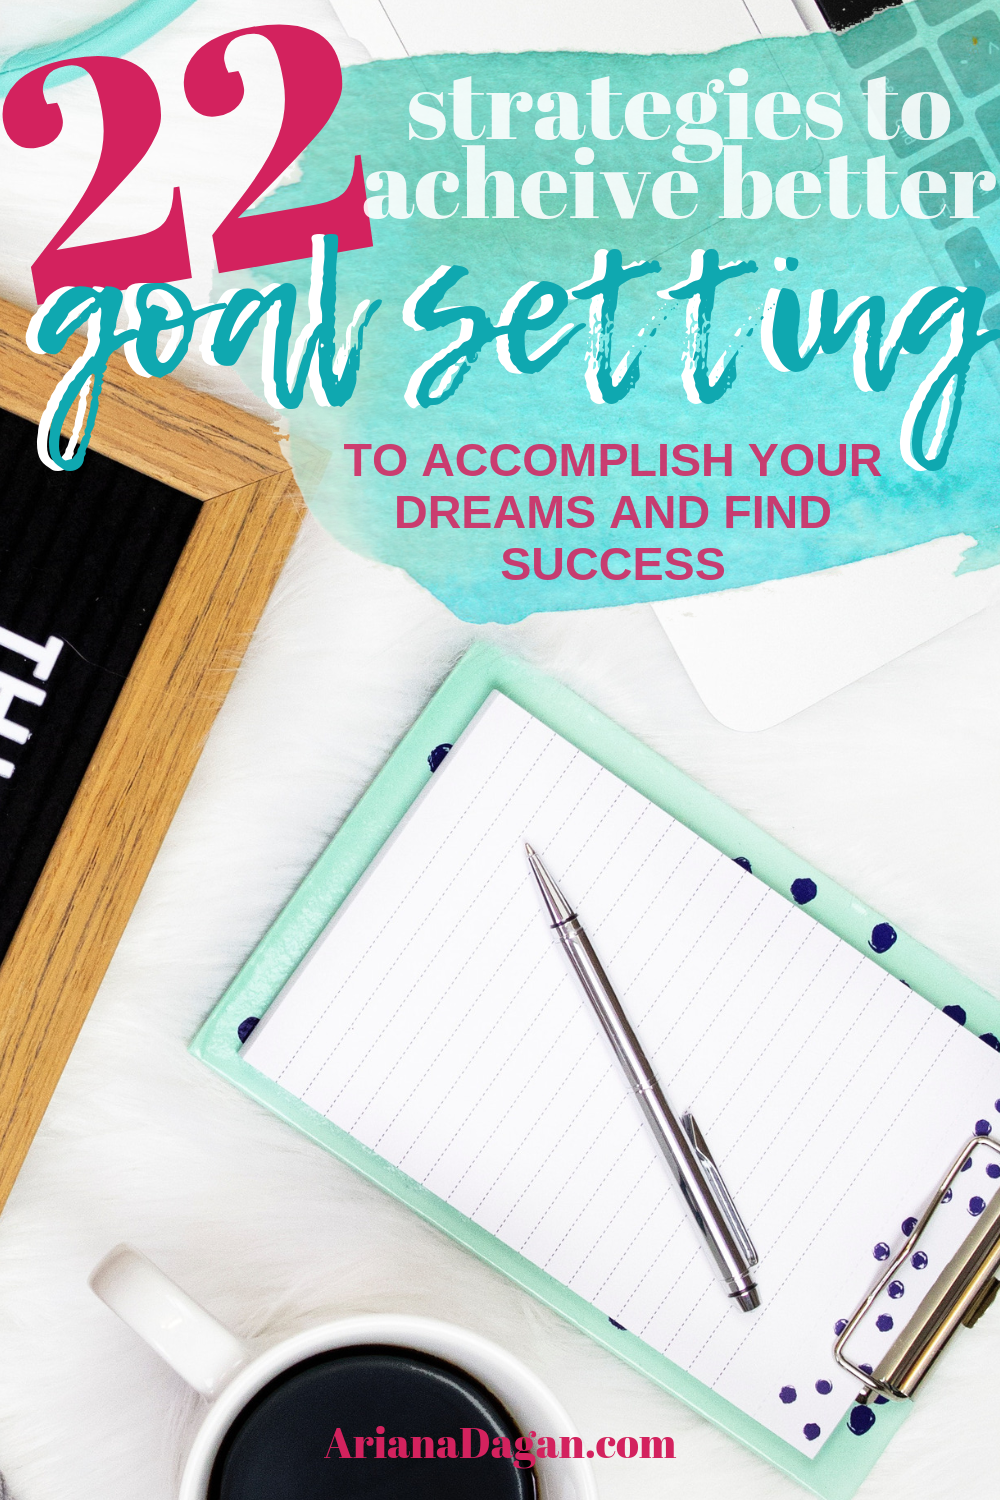 22 Strategies to achieve better goal setting to accomplish your dreams and find success by ariana dagan